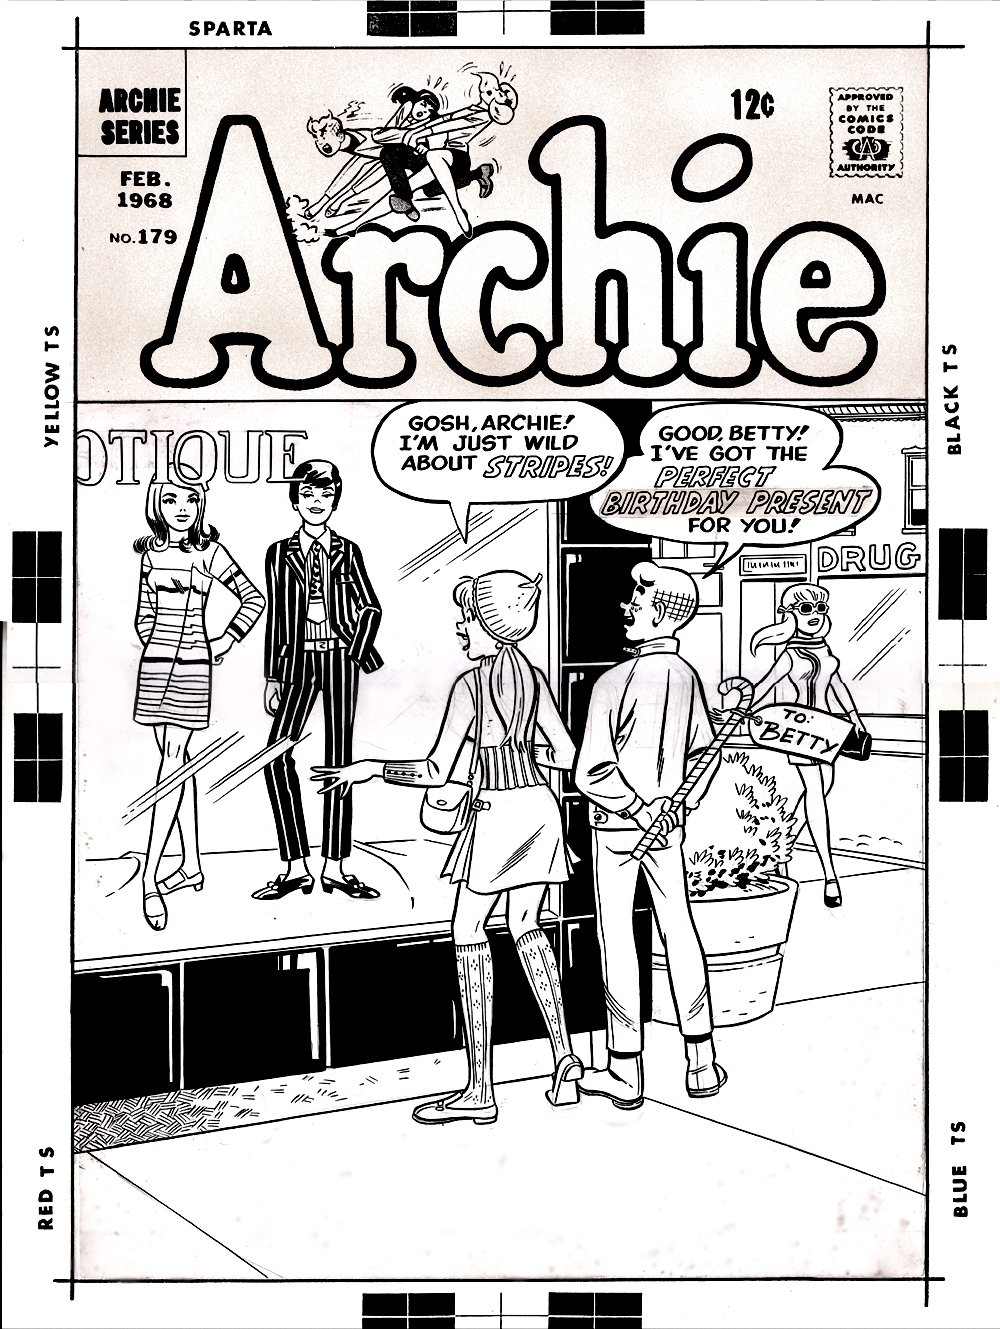 Archie Comics #179 Cover (LARGE SILVER AGE COVER) 1967